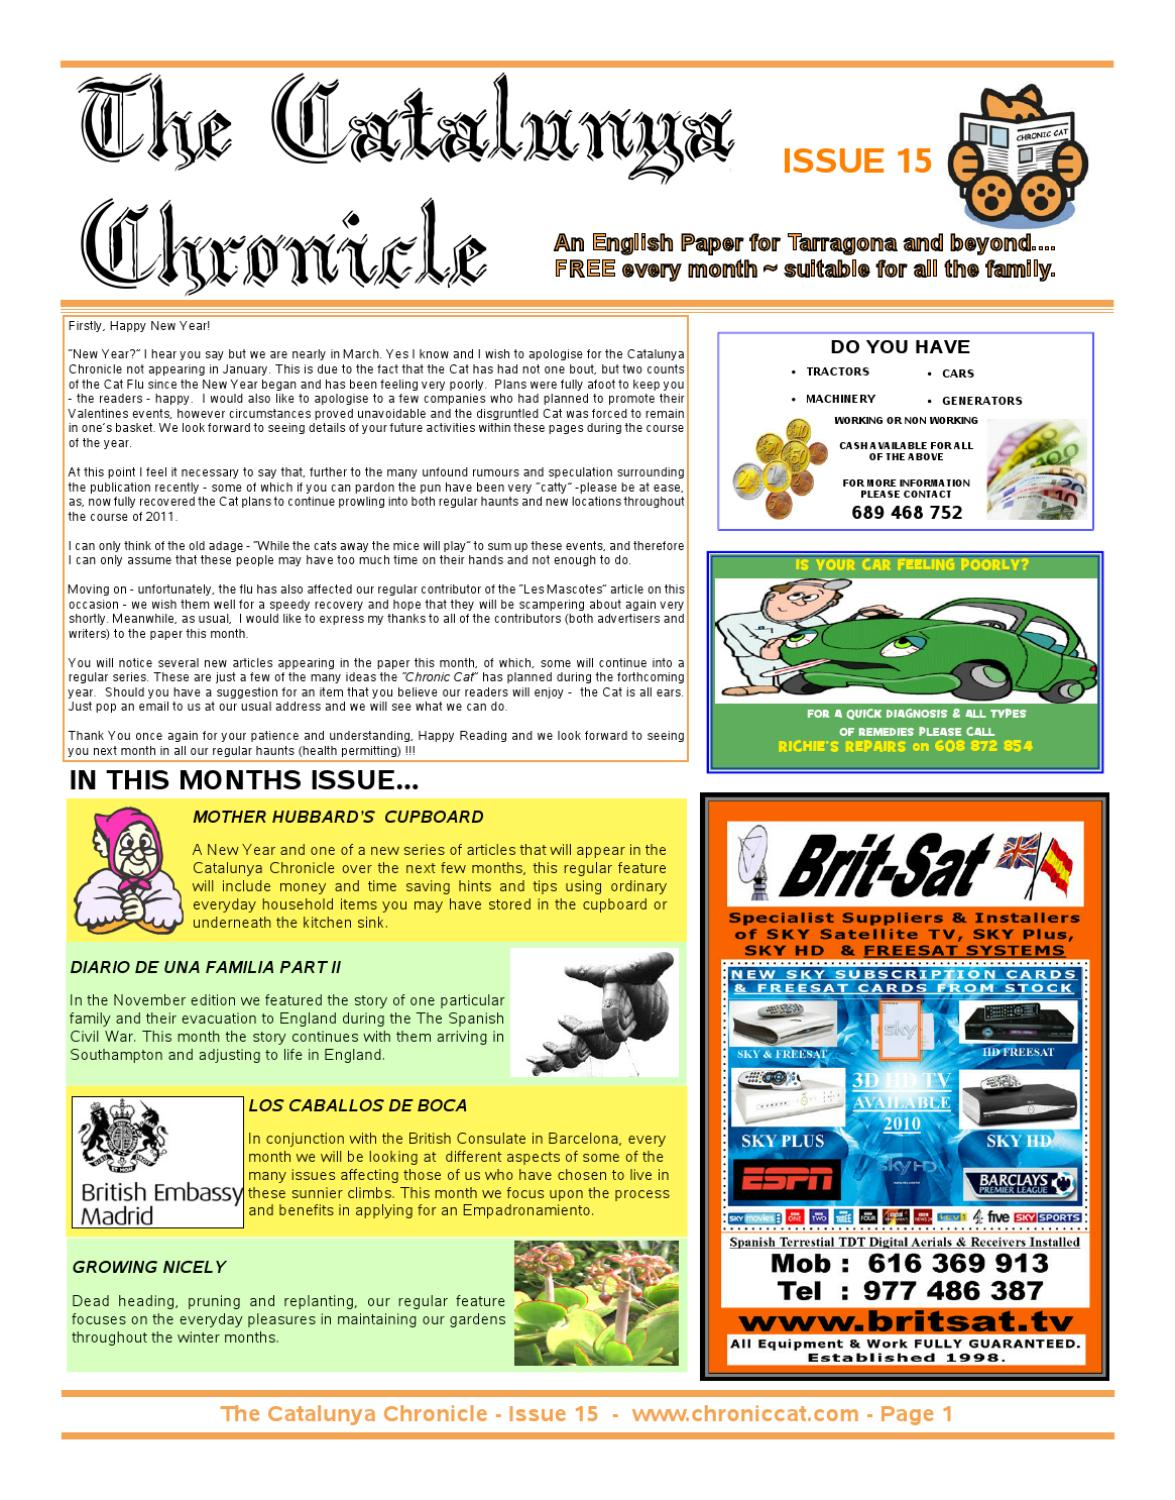 The catalunya chronicle issue 15 by catalunya chronicle issuu fandeluxe Gallery